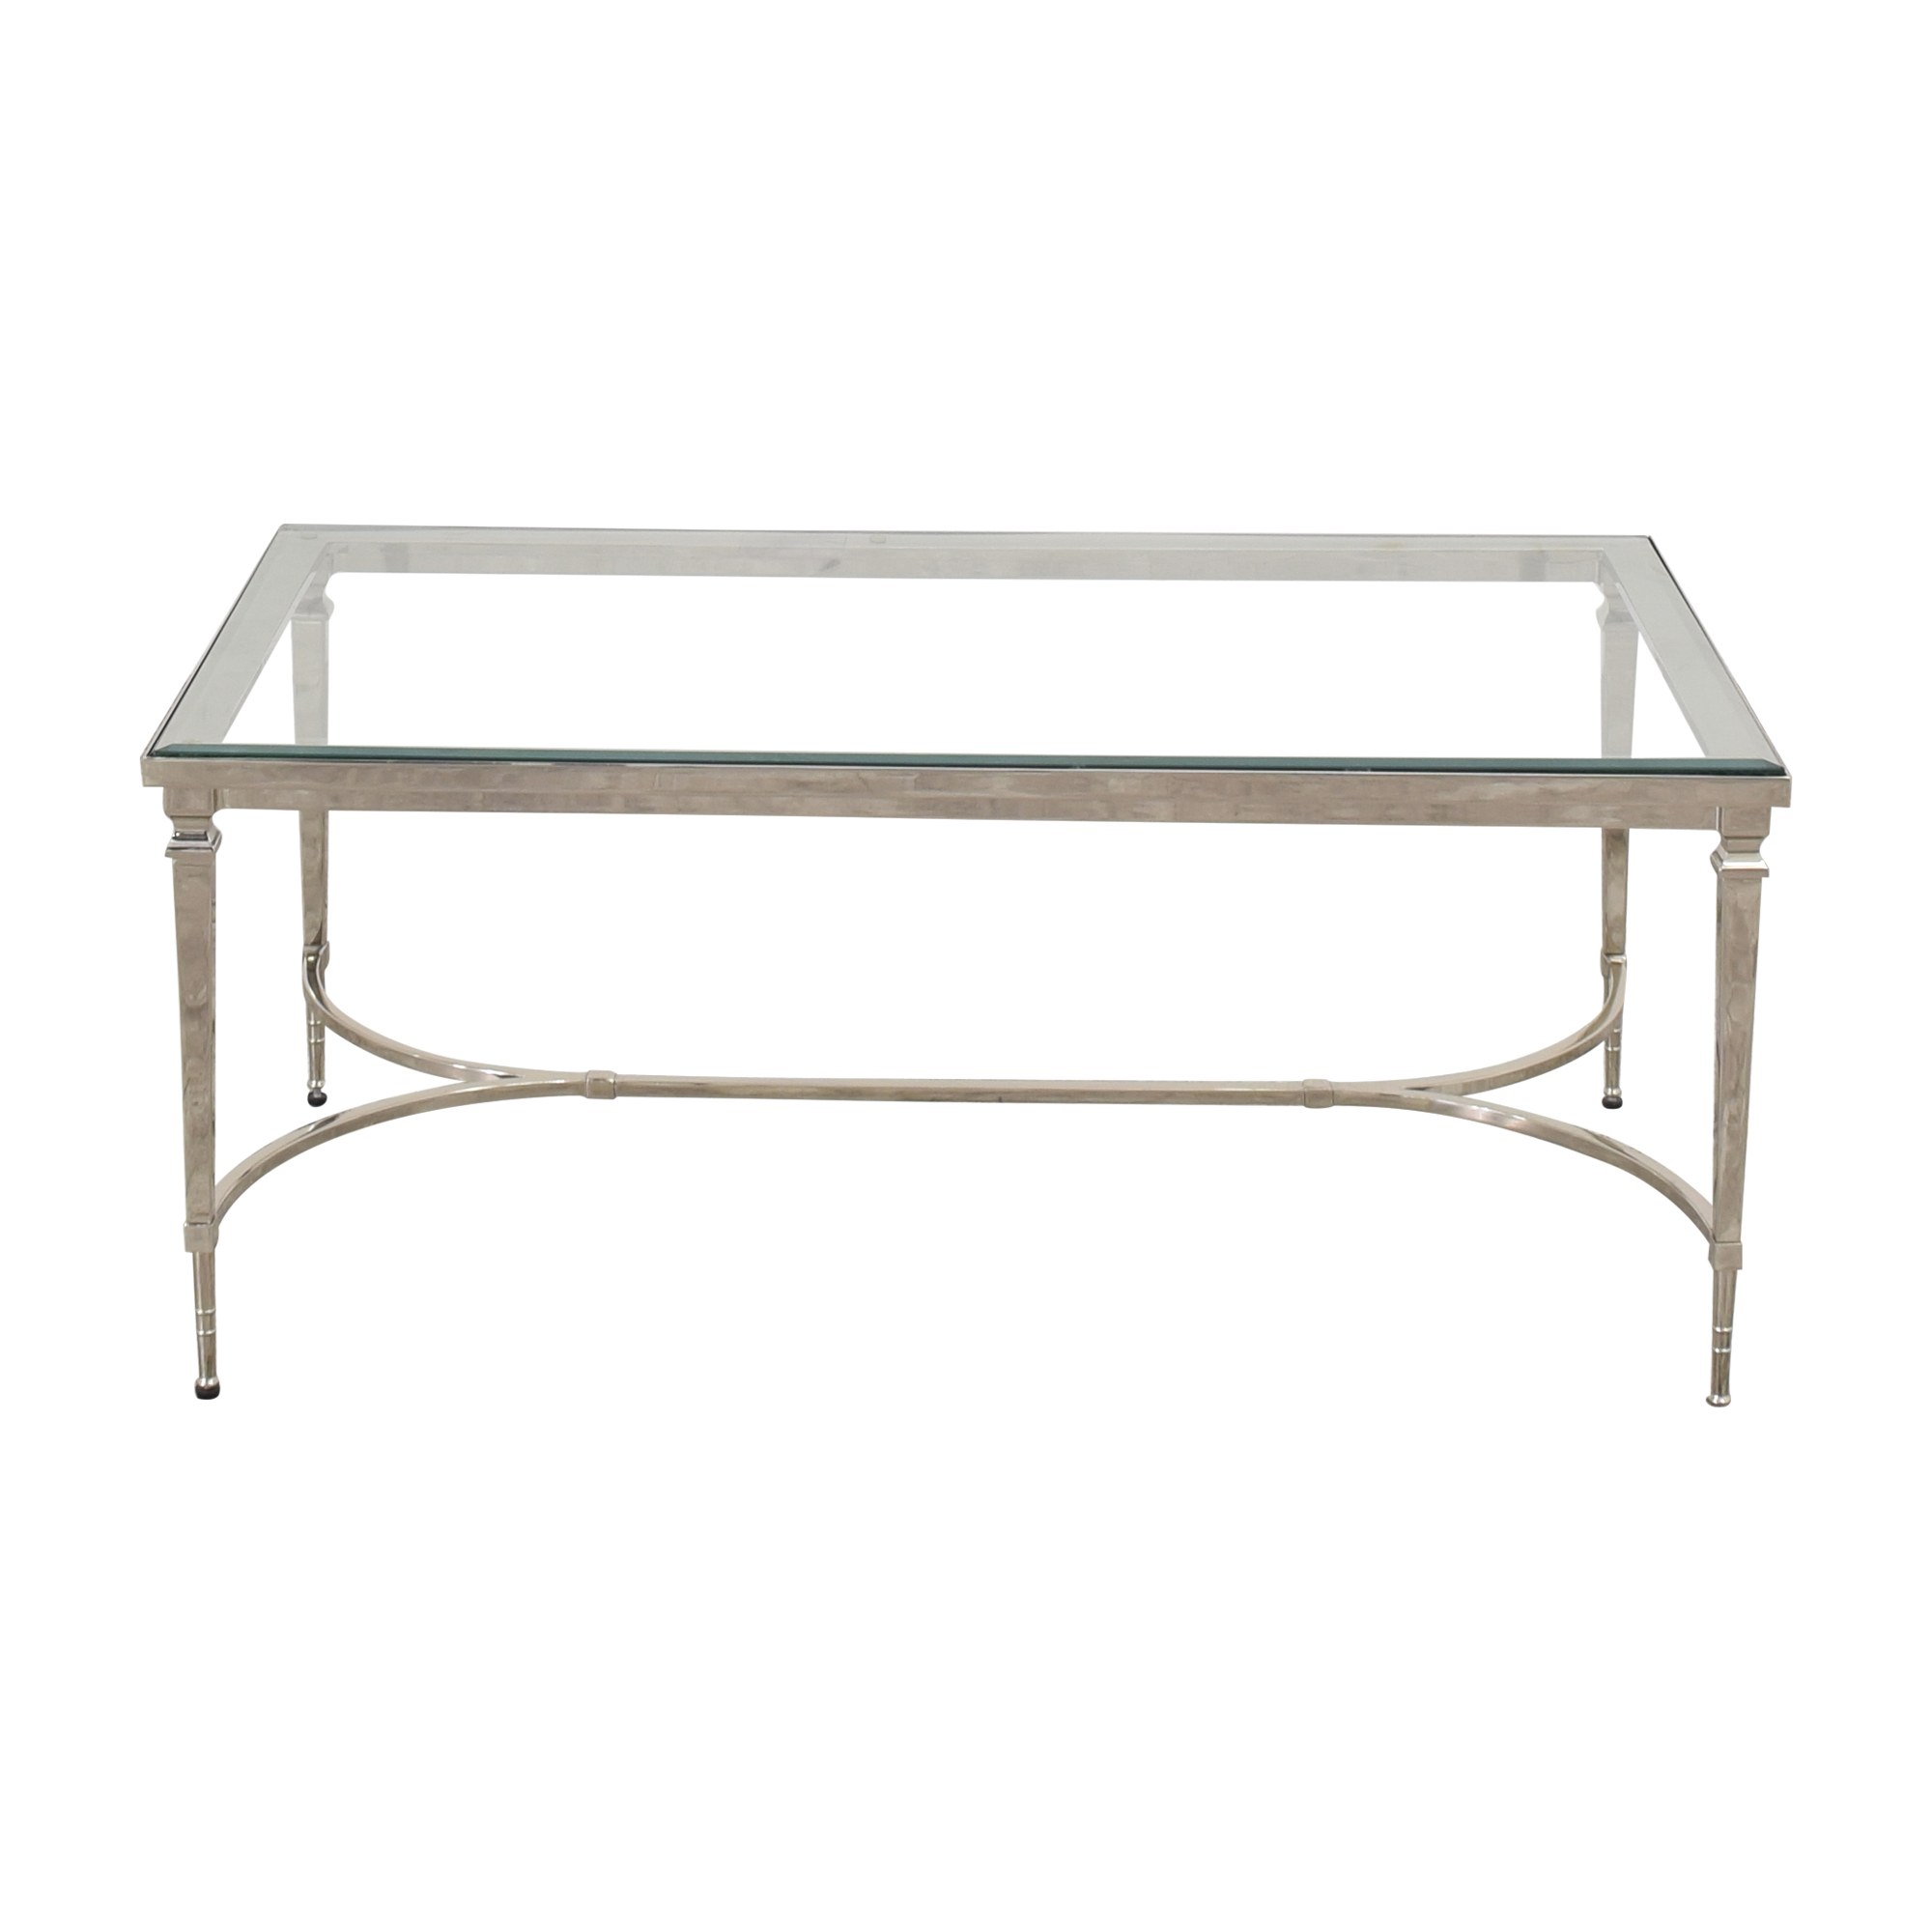 Williams Sonoma Cosmopolitan Coffee Table / Coffee Tables